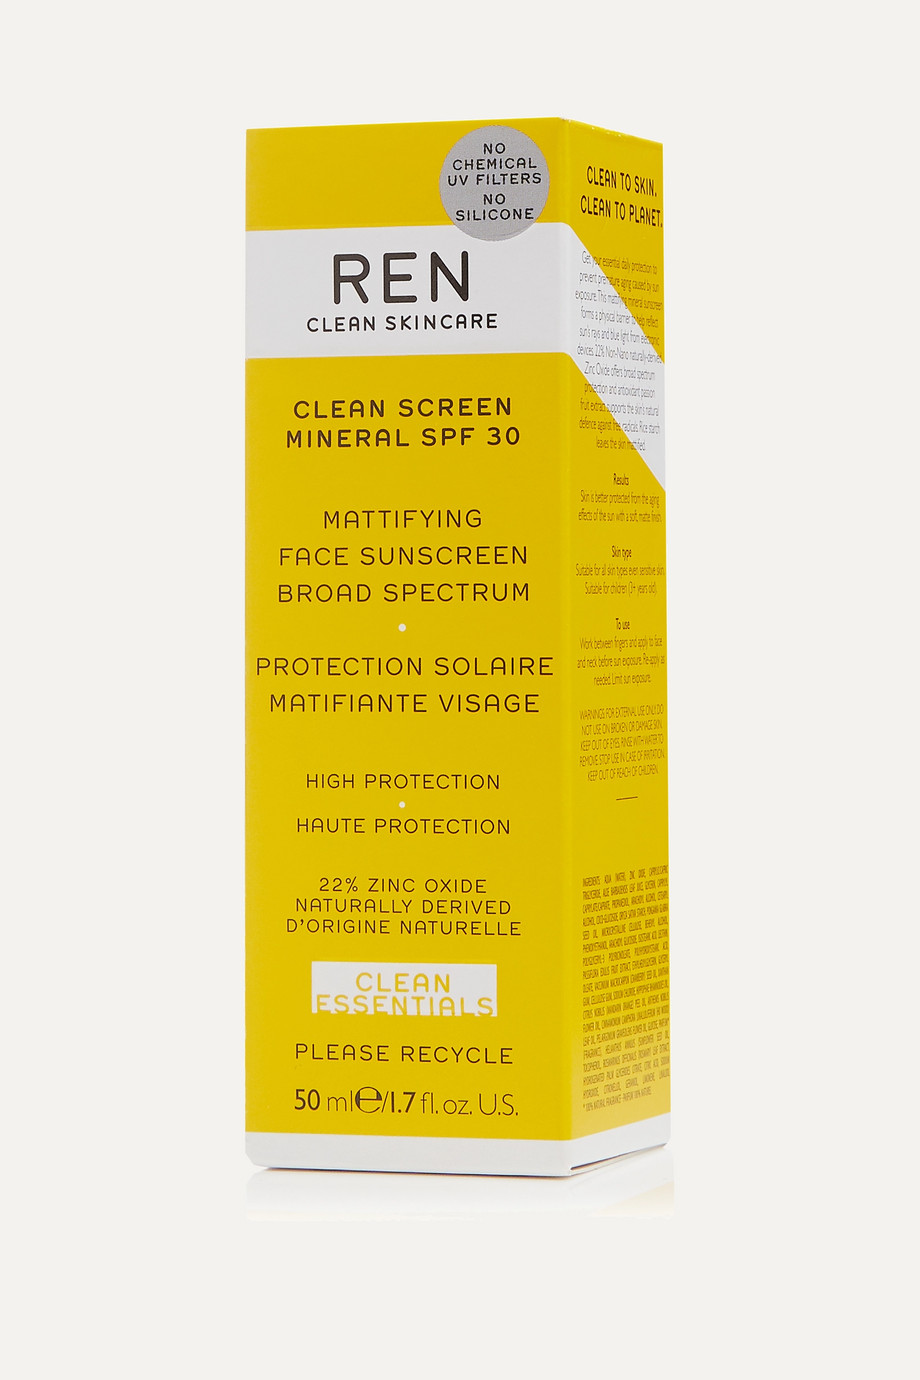 REN Clean Skincare Clean Screen Mineral Mattifying Face Sunscreen SPF30, 50ml